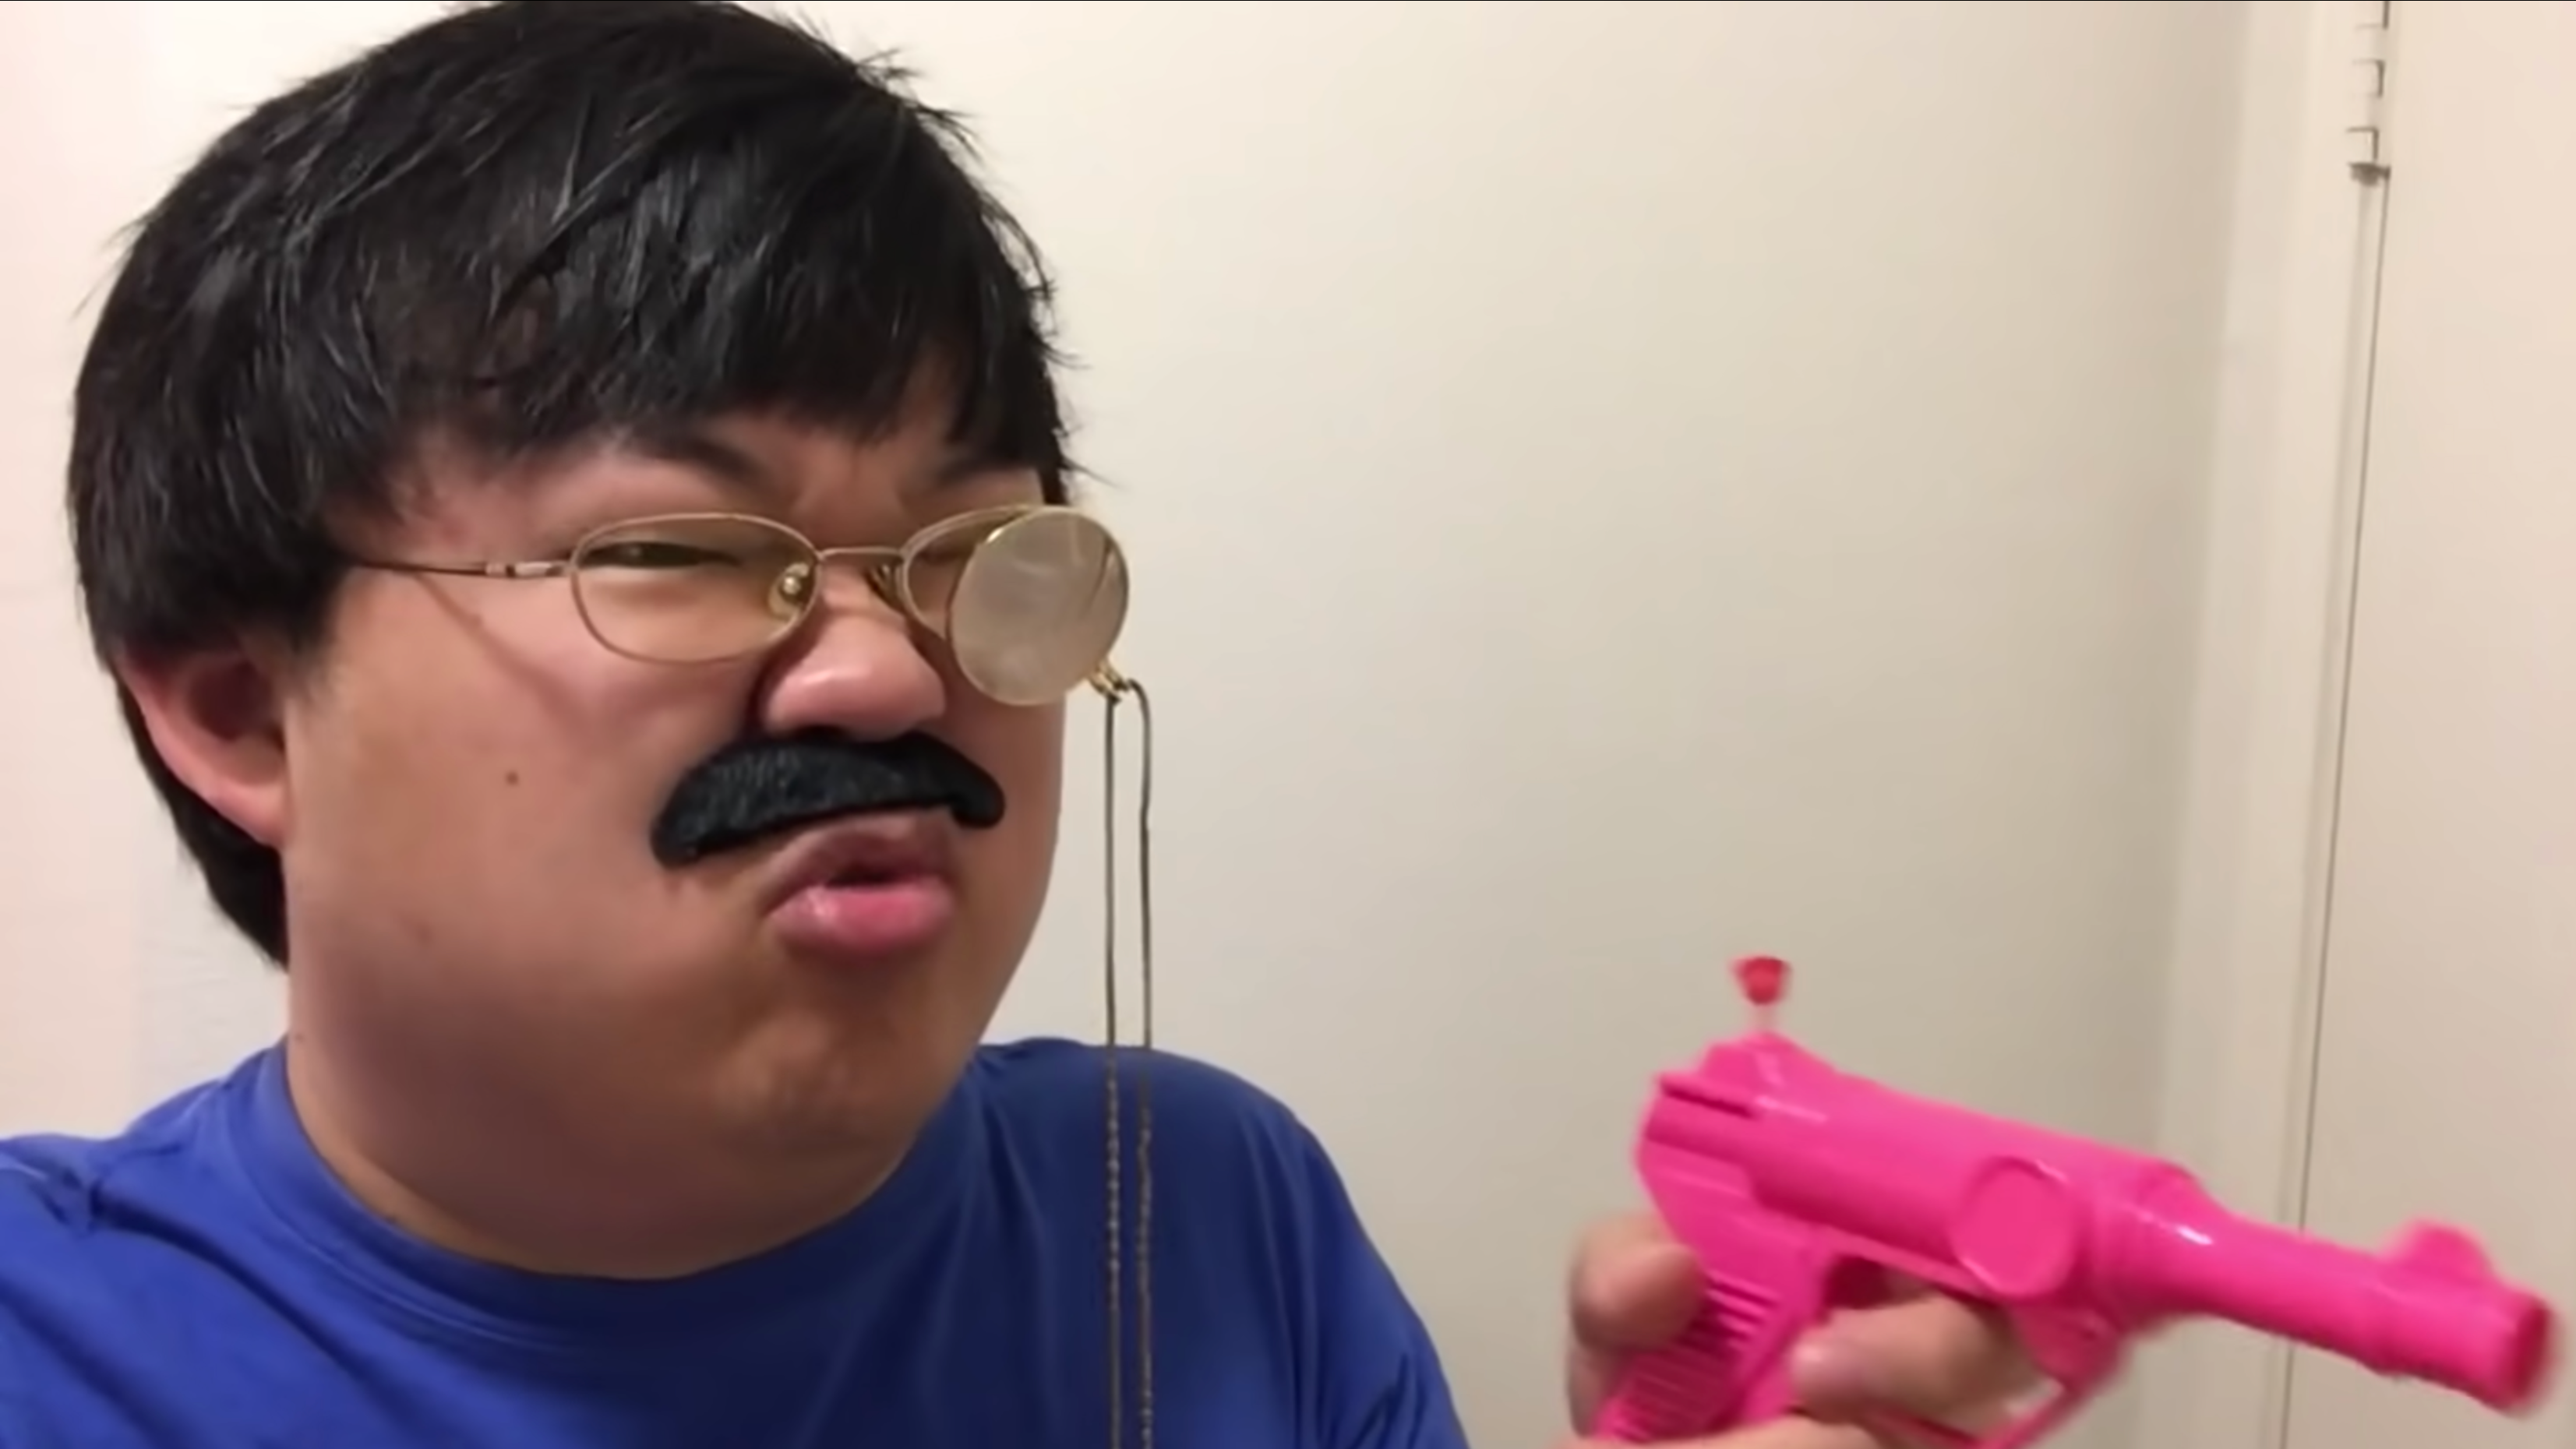 A screencap of SungWon Cho brandishing a pink water pistol while wearing a fake mustache and a monocle over his glasses.